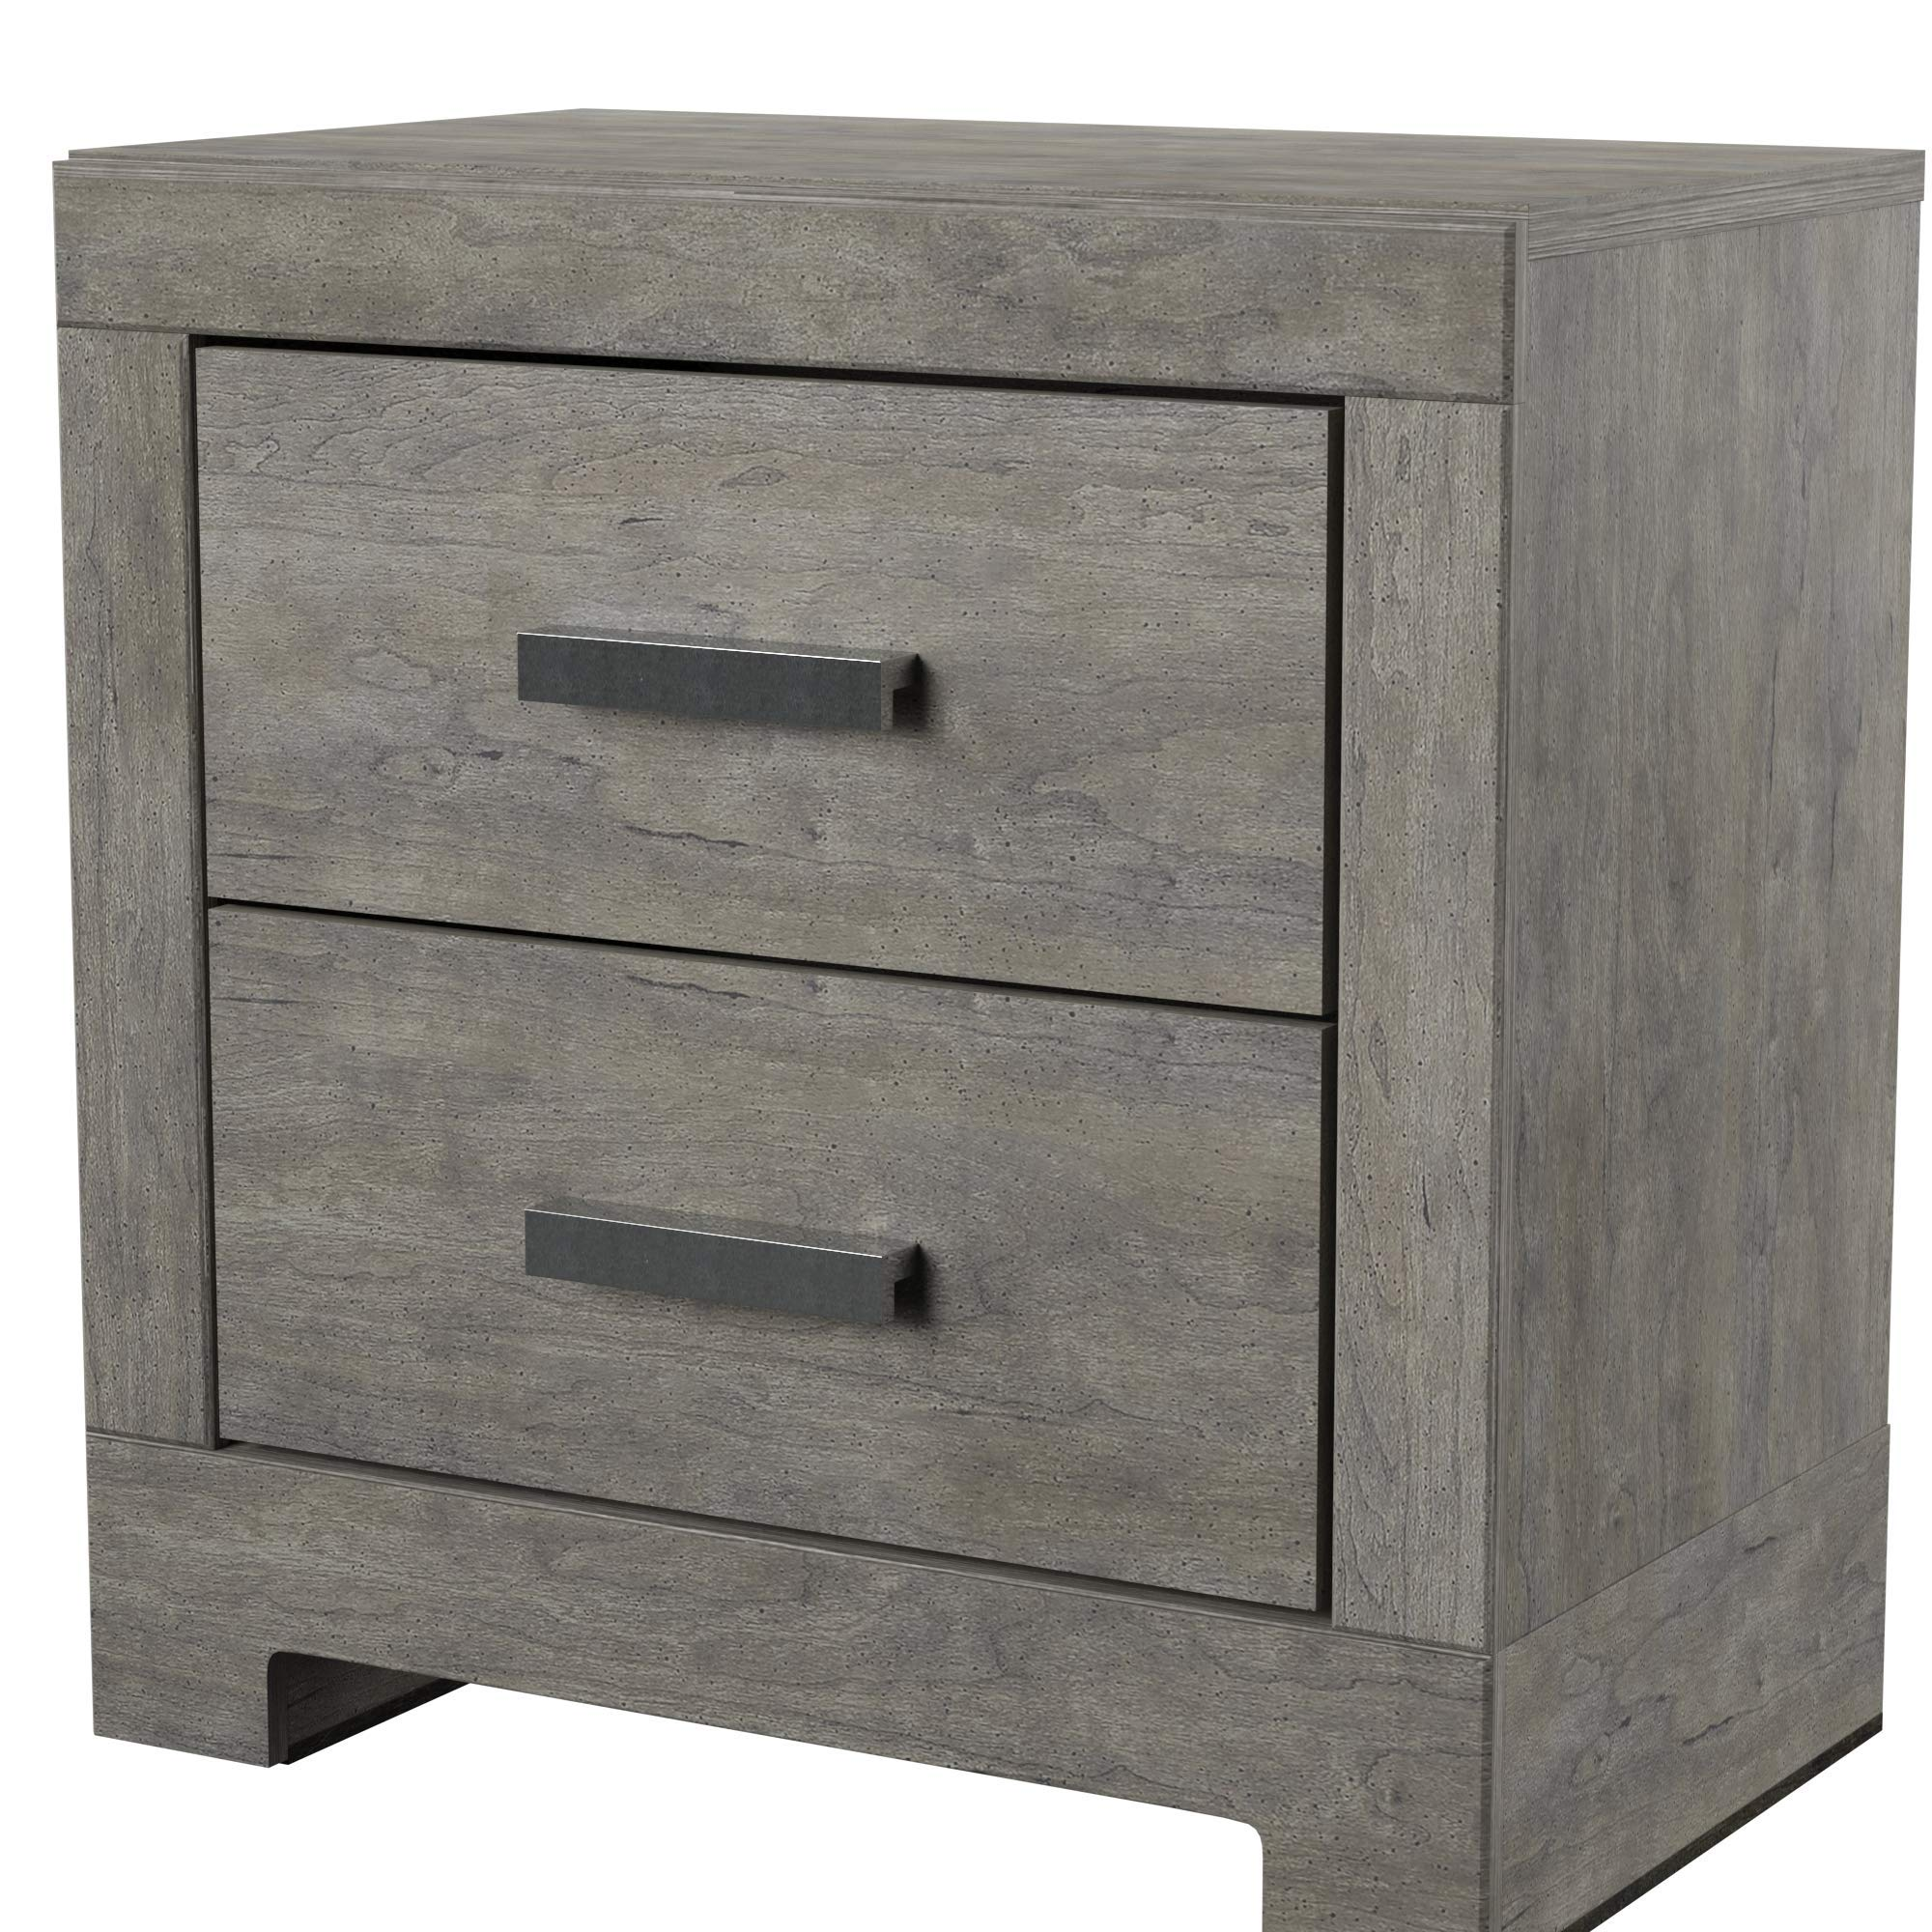 Ashley Furniture Signature Design - Culverbach Nightstand - Contemporary Style - Gray